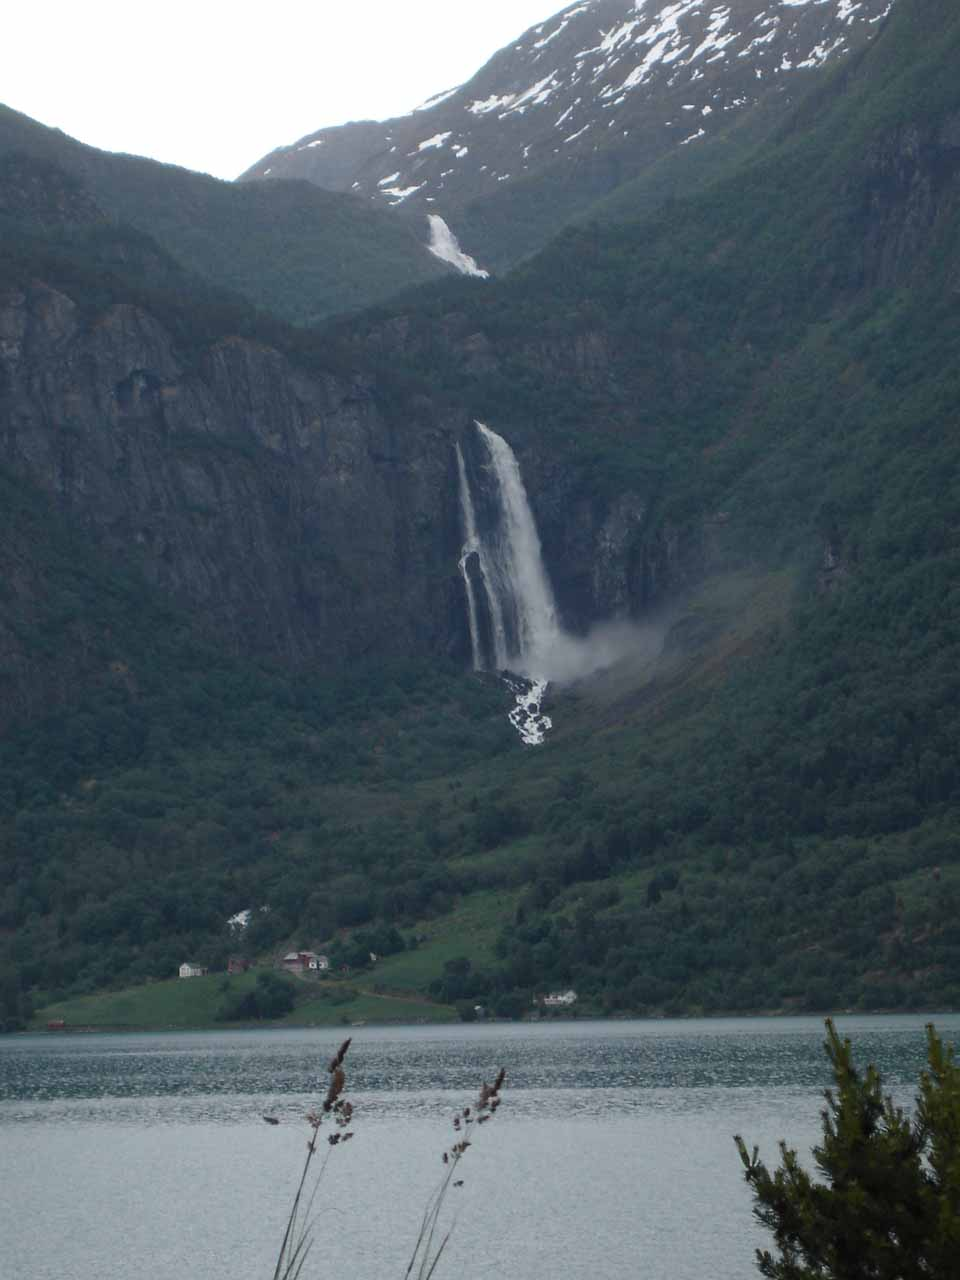 Another look across Lustrafjorden towards Feigefossen, but notice there was another upper tier of the waterfall higher up the mountain